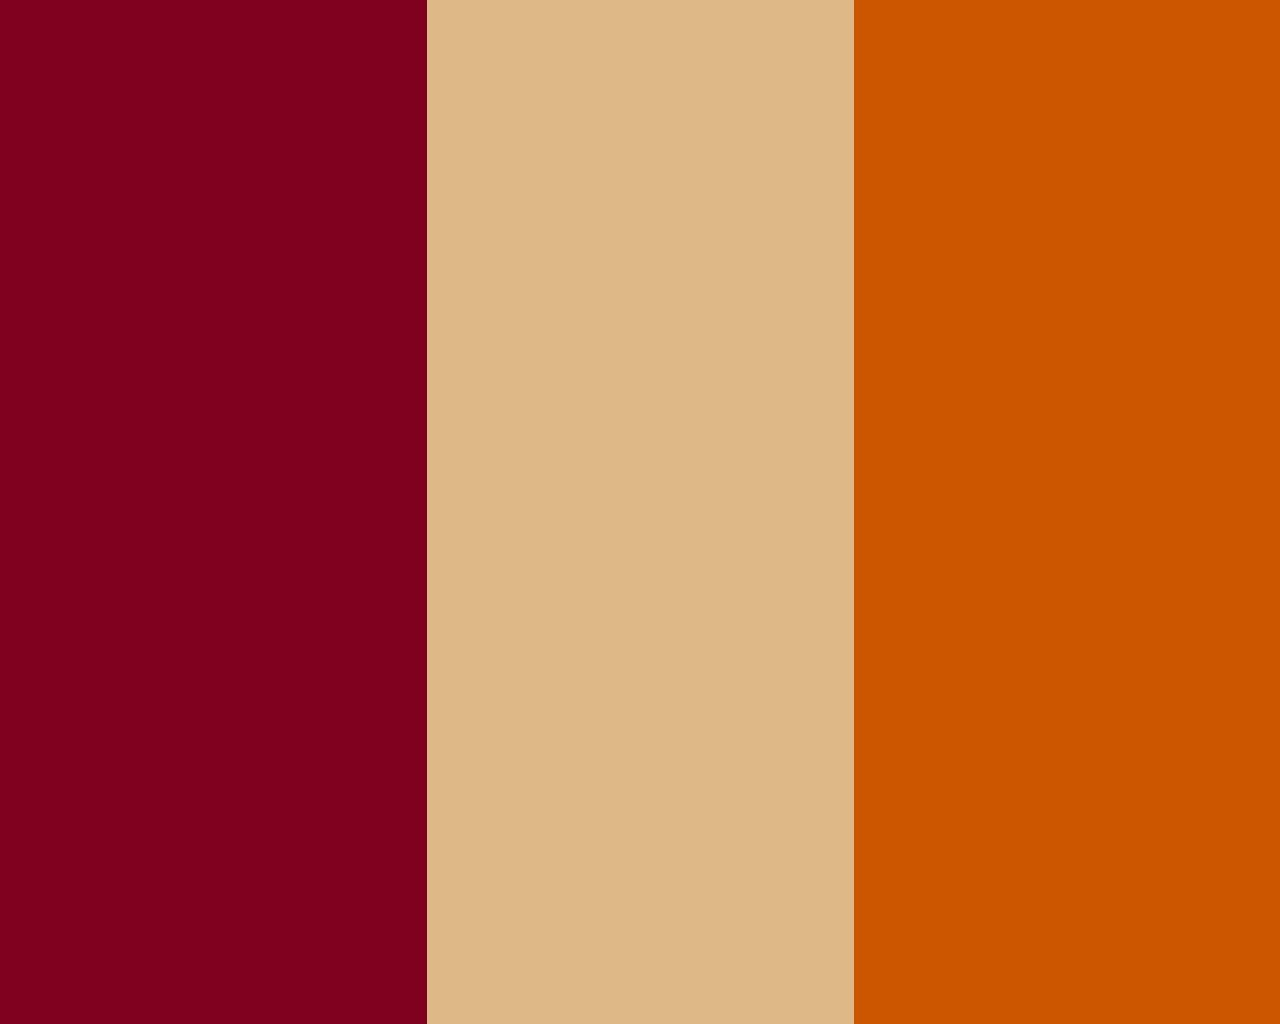 Different Shades Of Orange Paint 1280x1024 burgundy, burlywood and burnt orange three color